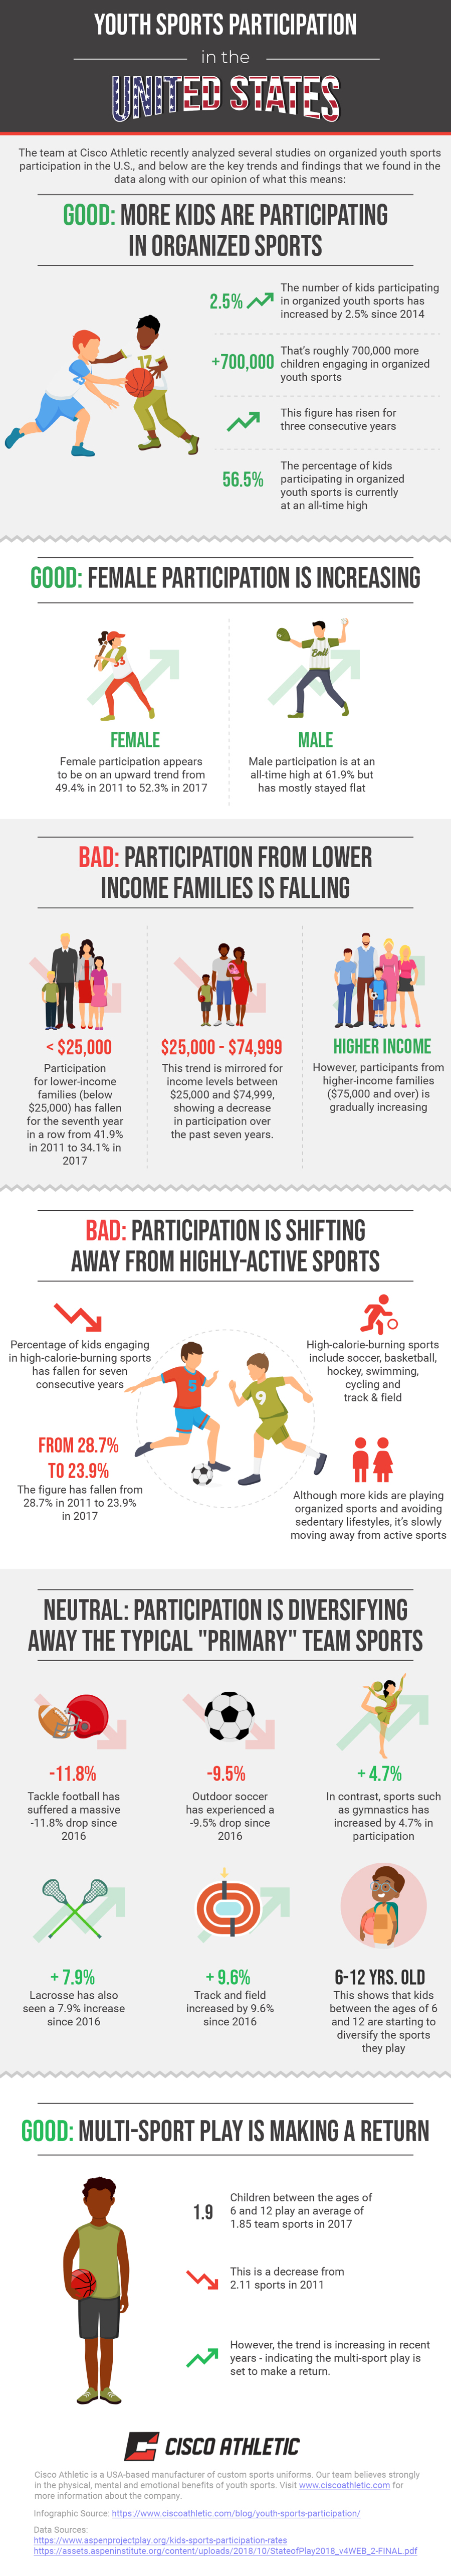 Youth Sports Participation in the USA